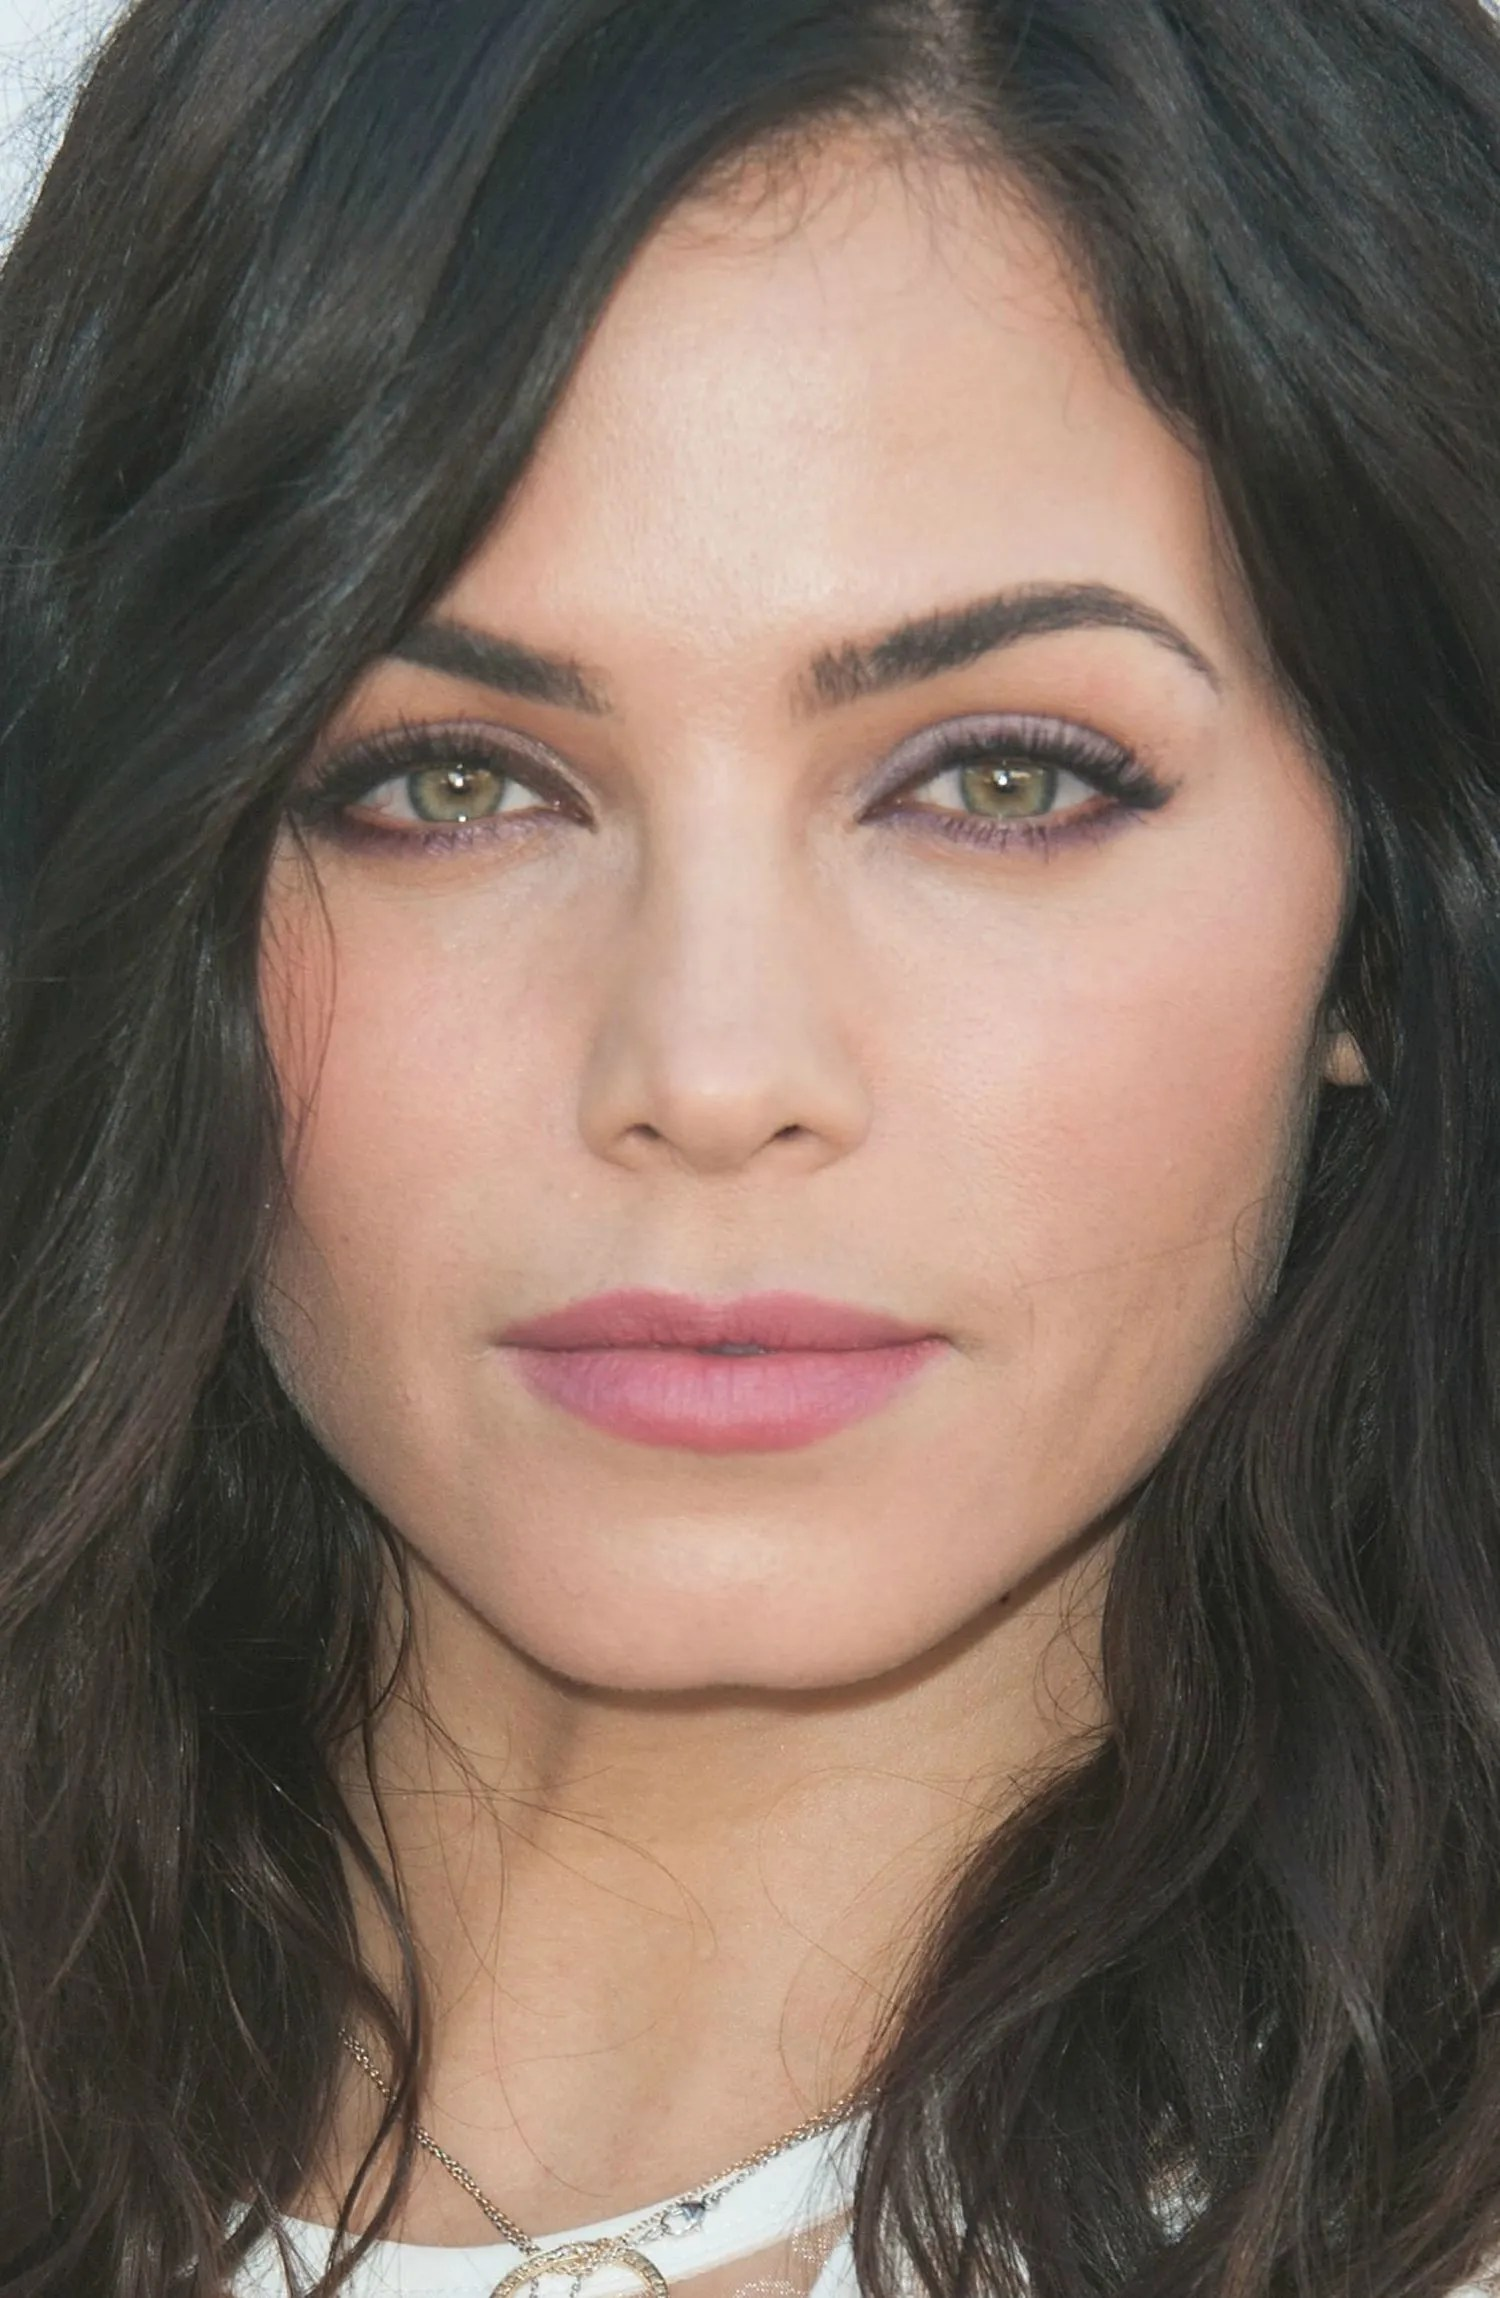 Cool Girl Wallpaper For Whatsapp Best Fake Lashes For Holiday Parties Seen On Jenna Dewan